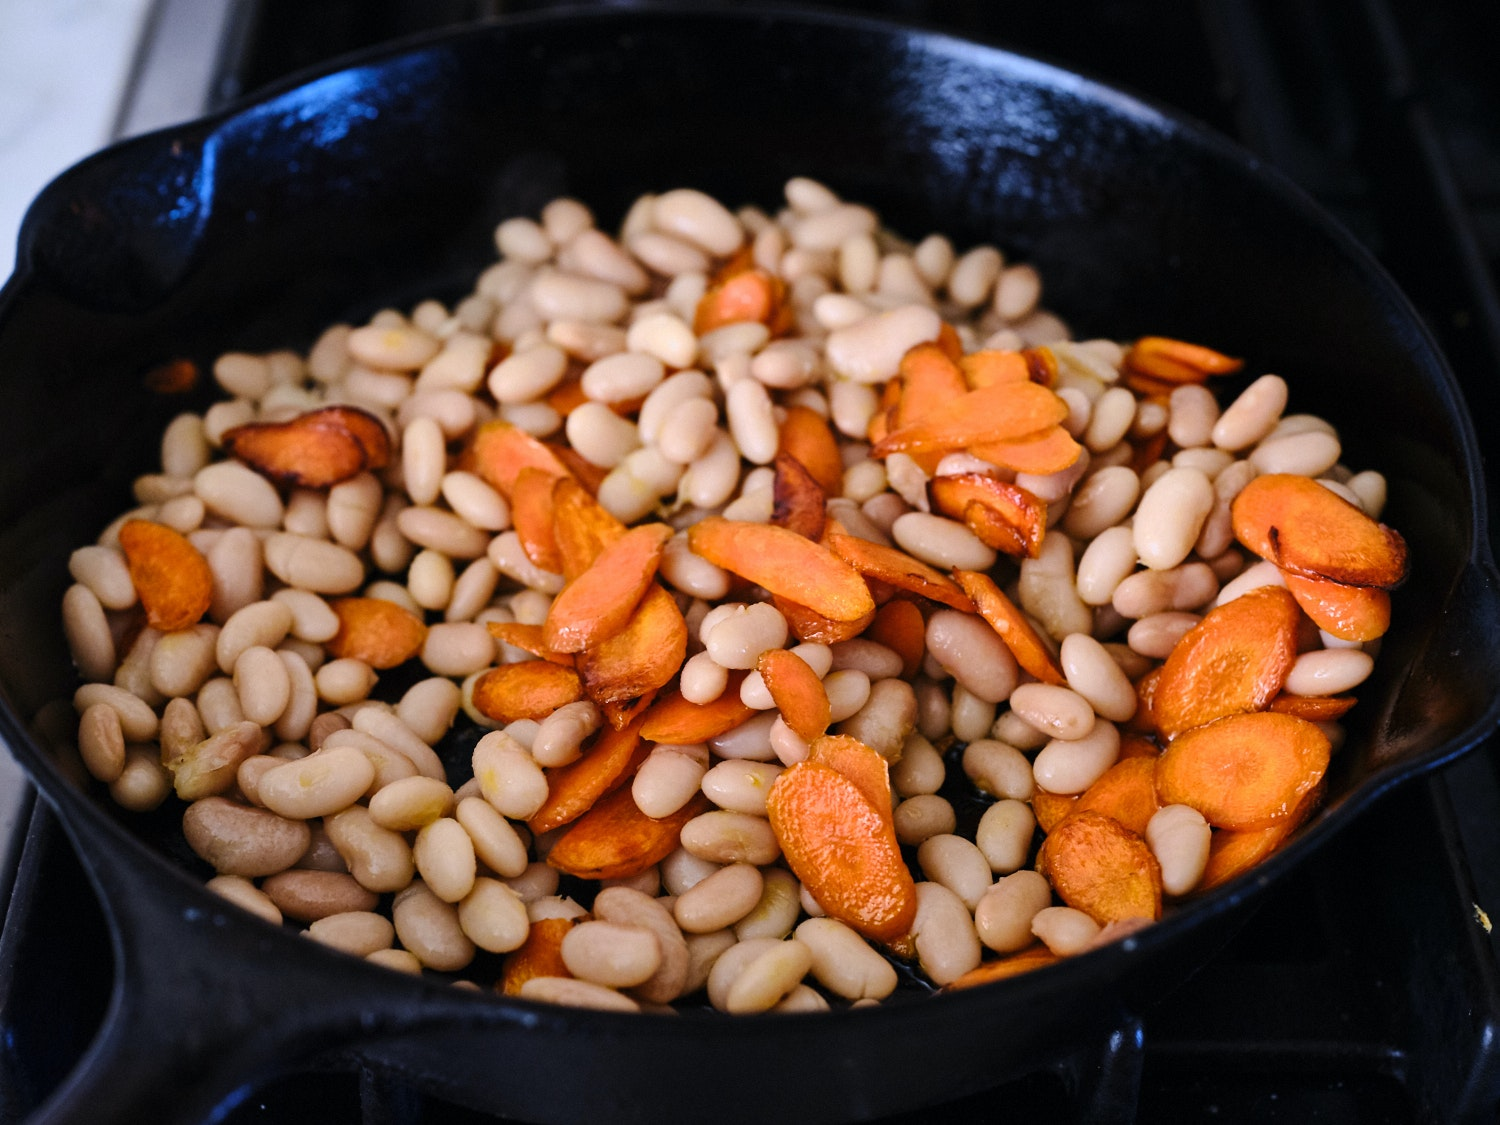 Carrots and beans in a cast iron skillet